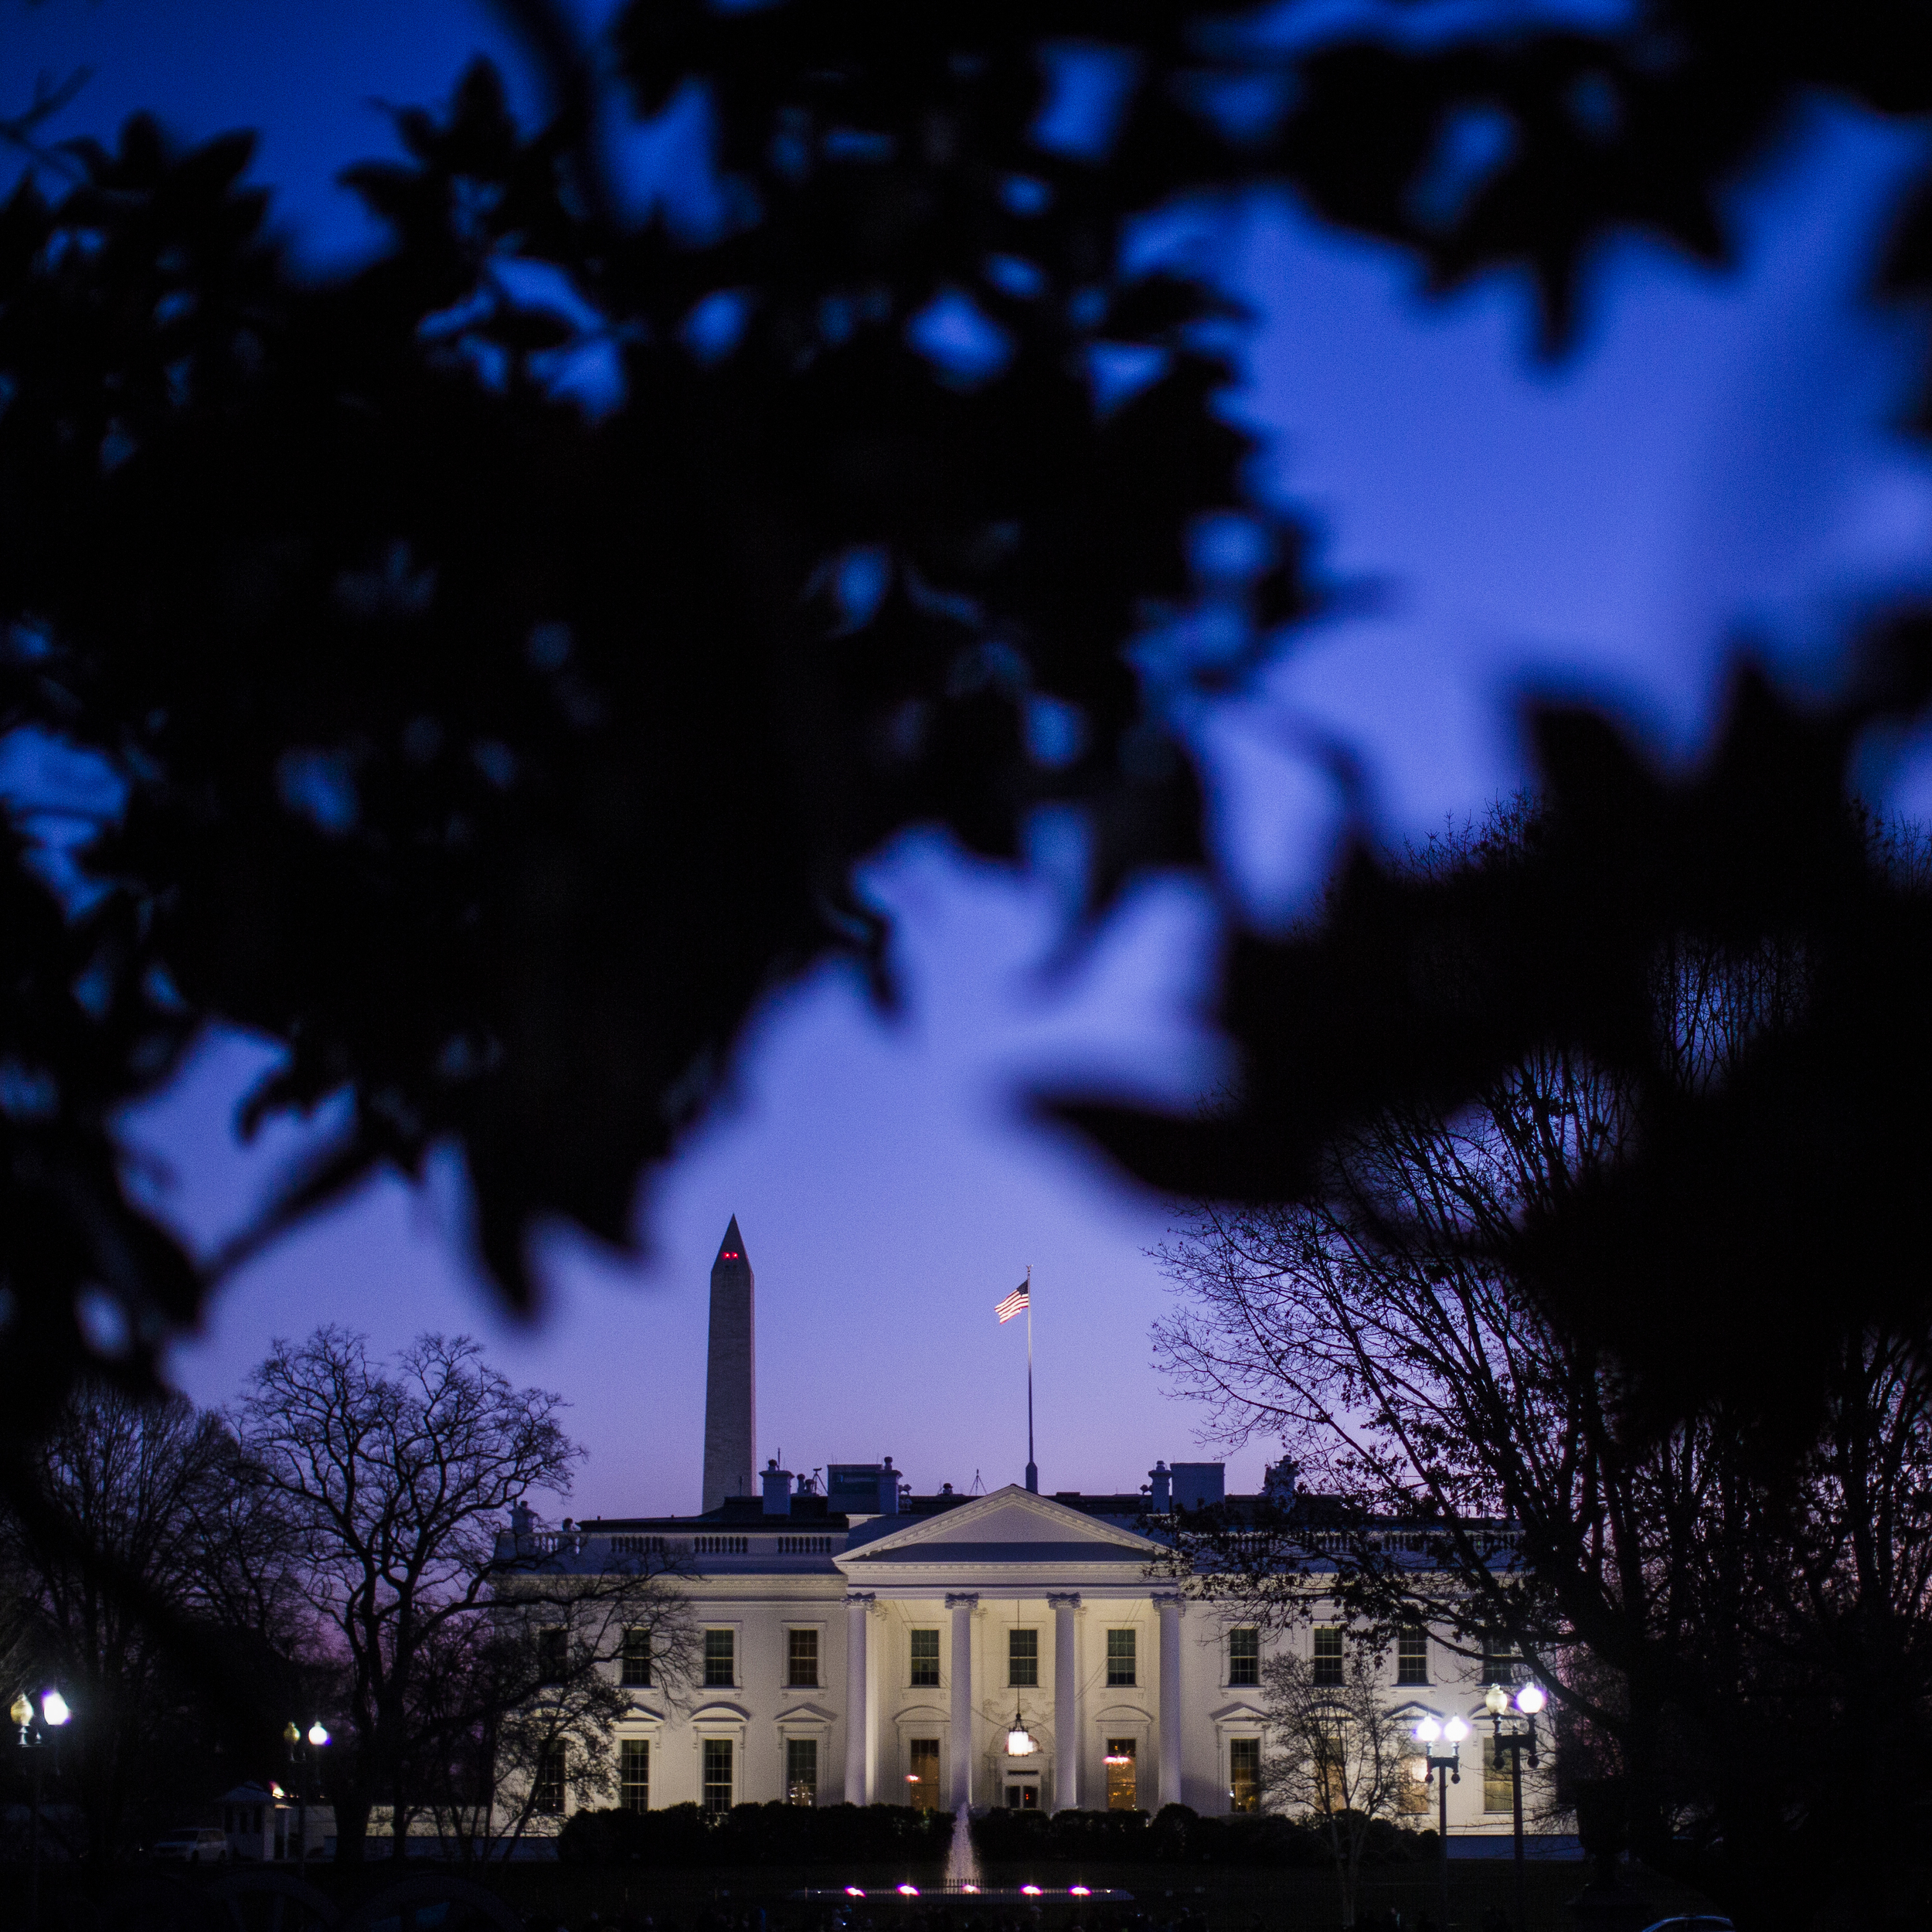 The White House is seen at sunset while President Barack Obama and his family are in Hawaii for their annual Christmas vacation trip in Washington, DC on Tuesday December 30, 2014.